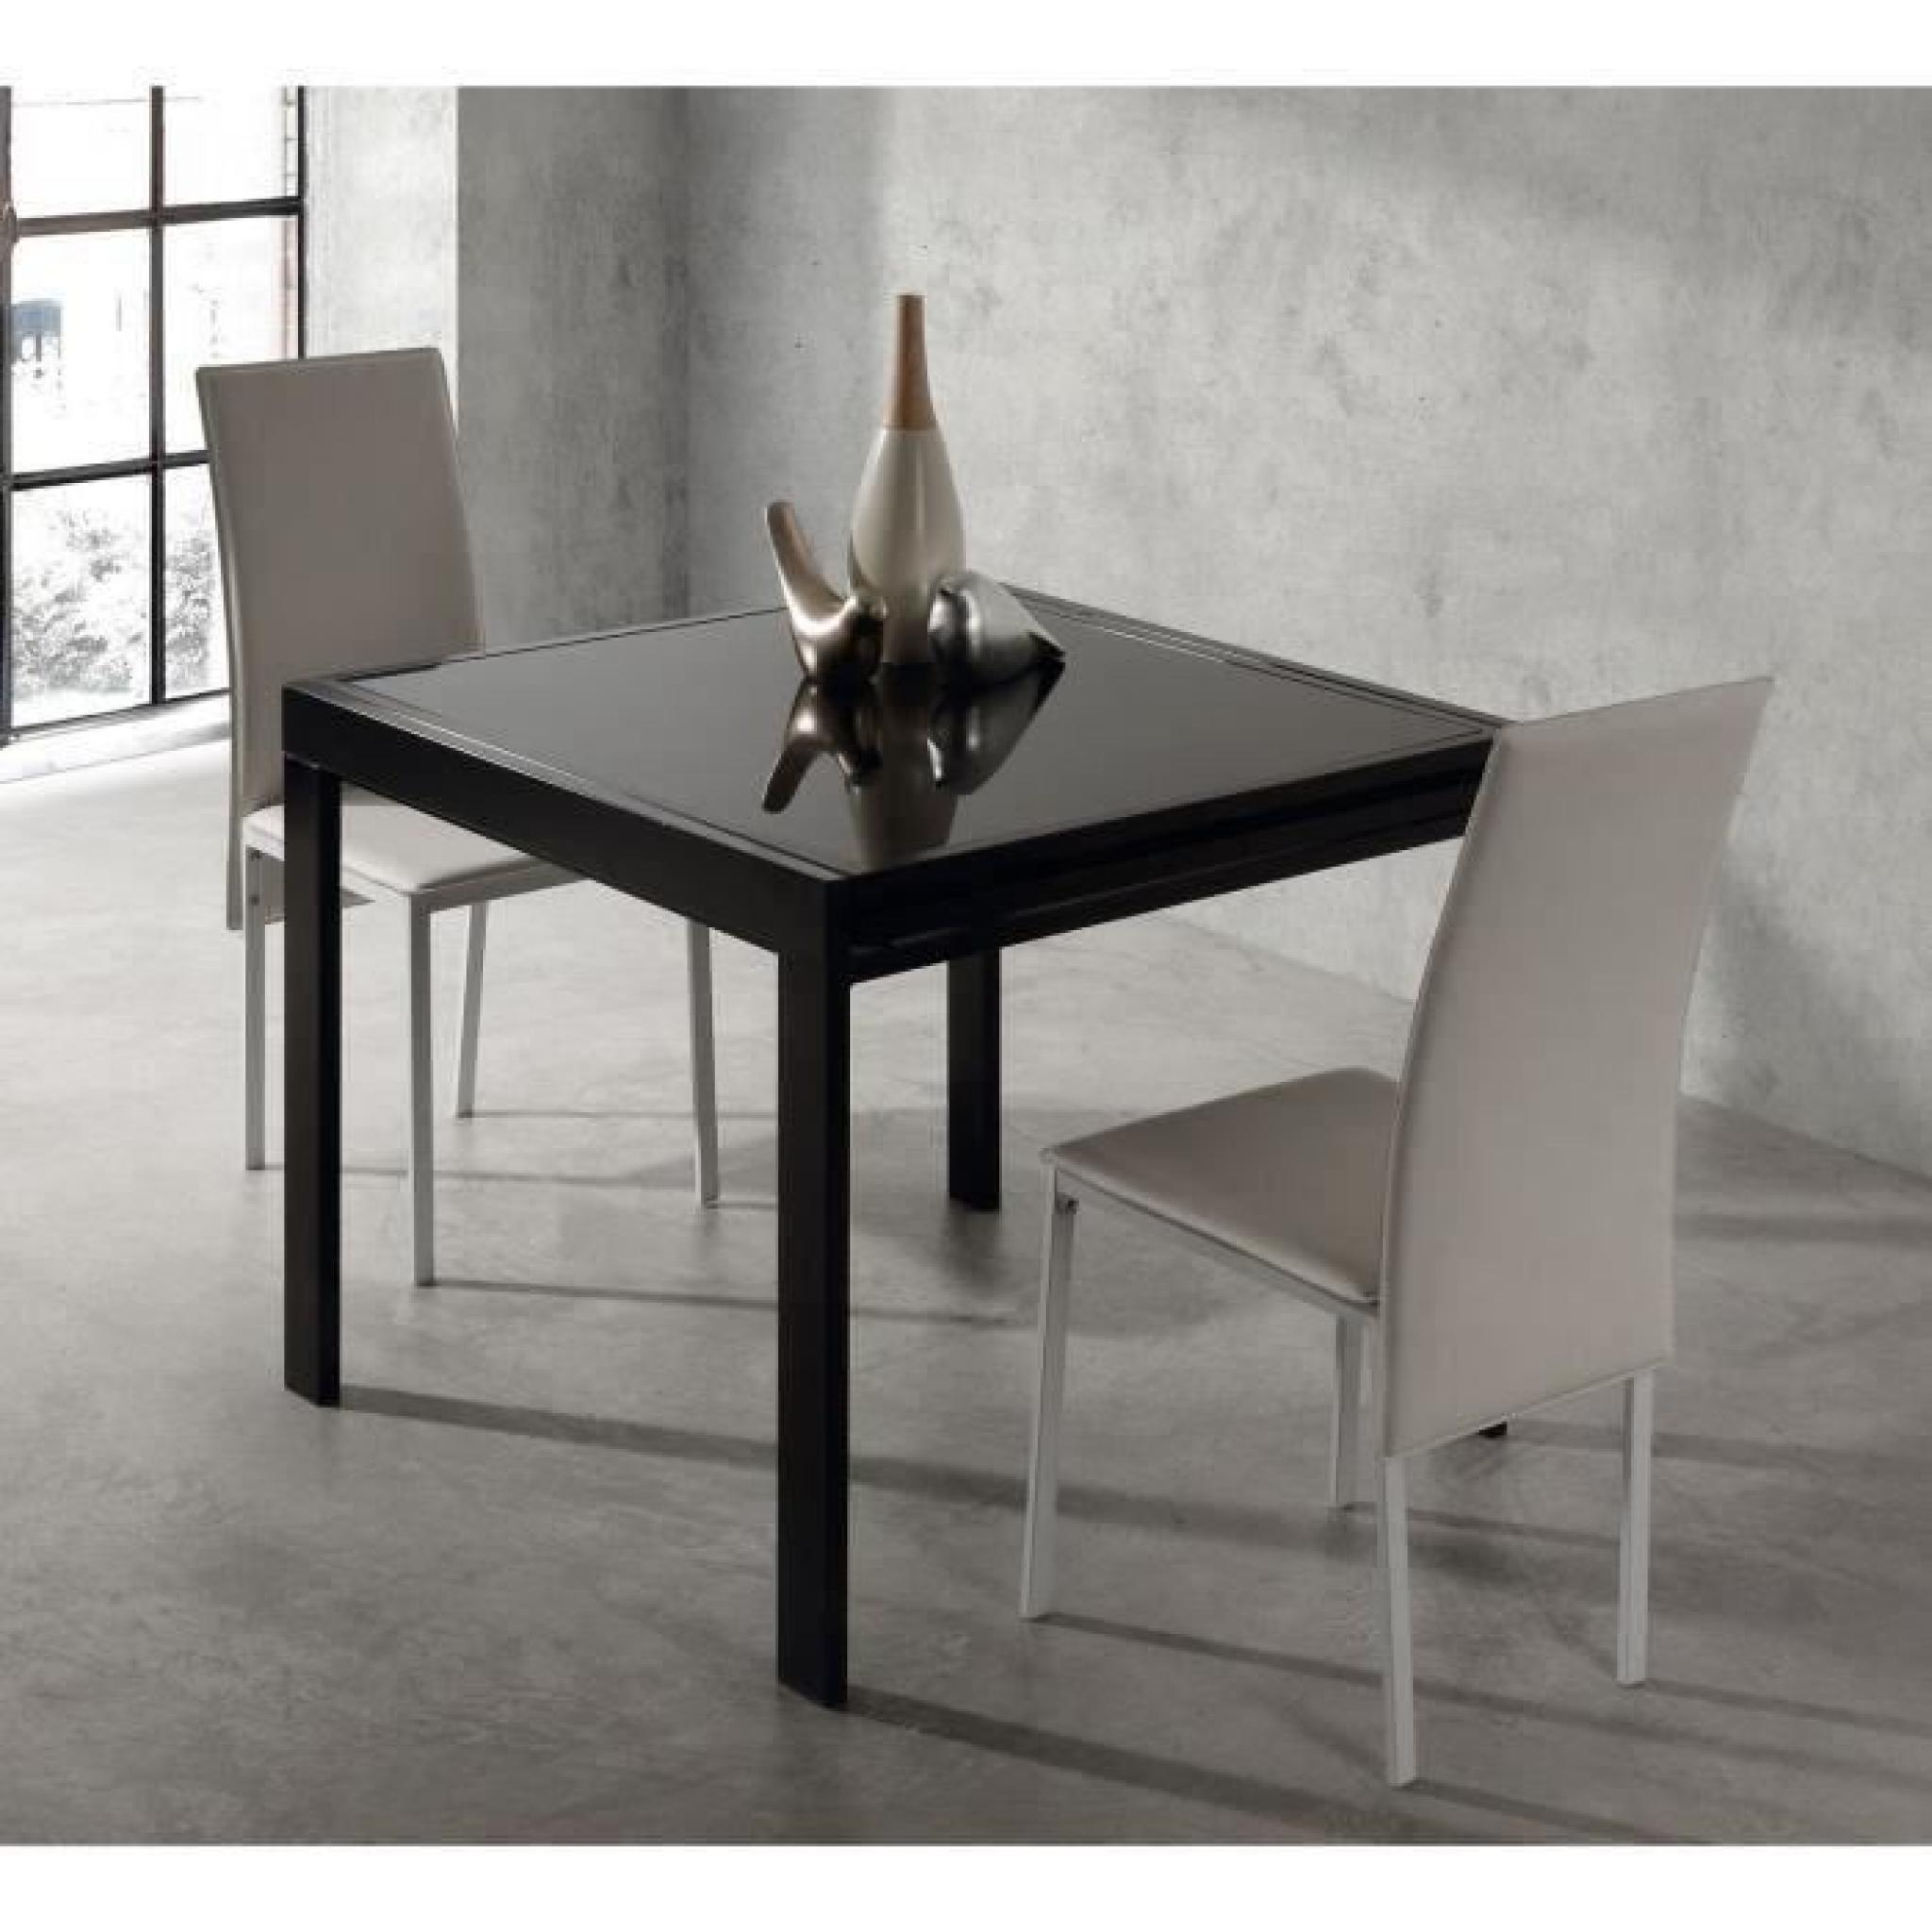 Table Ronde Extensible Noir Table Extensible Noir Stunning Table Extensible Chaises